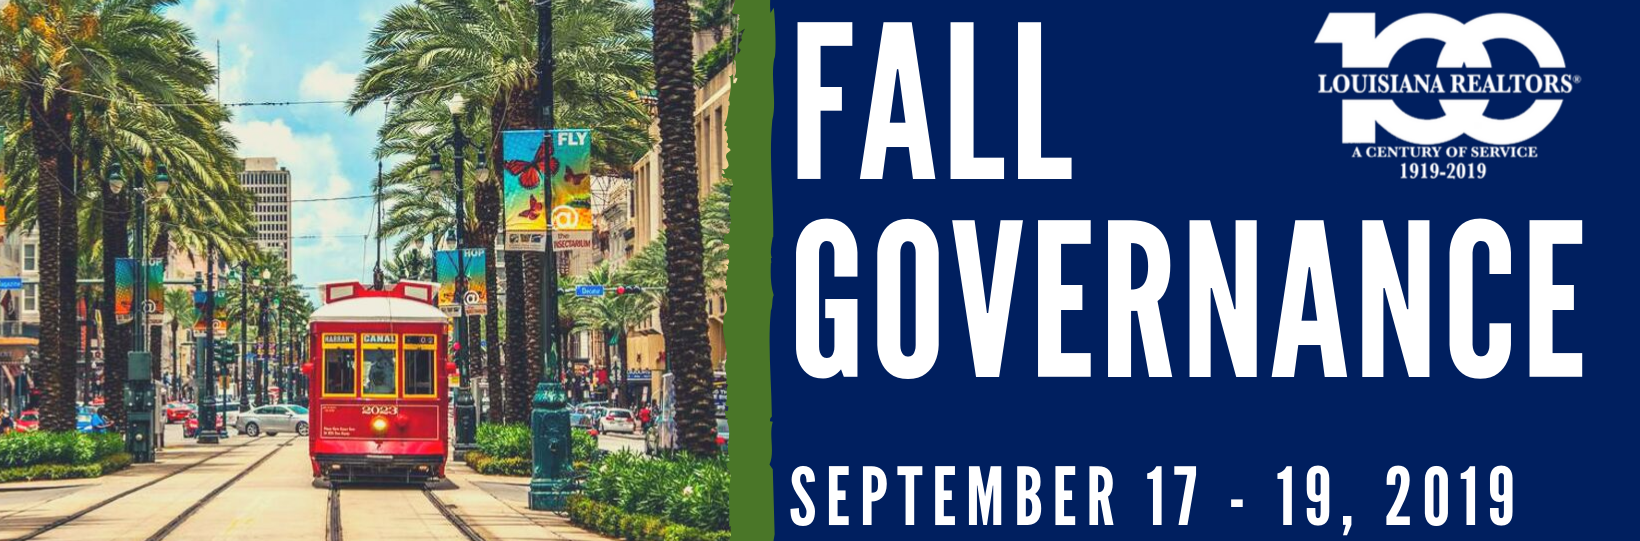 Fall Governance (3)CROP.png